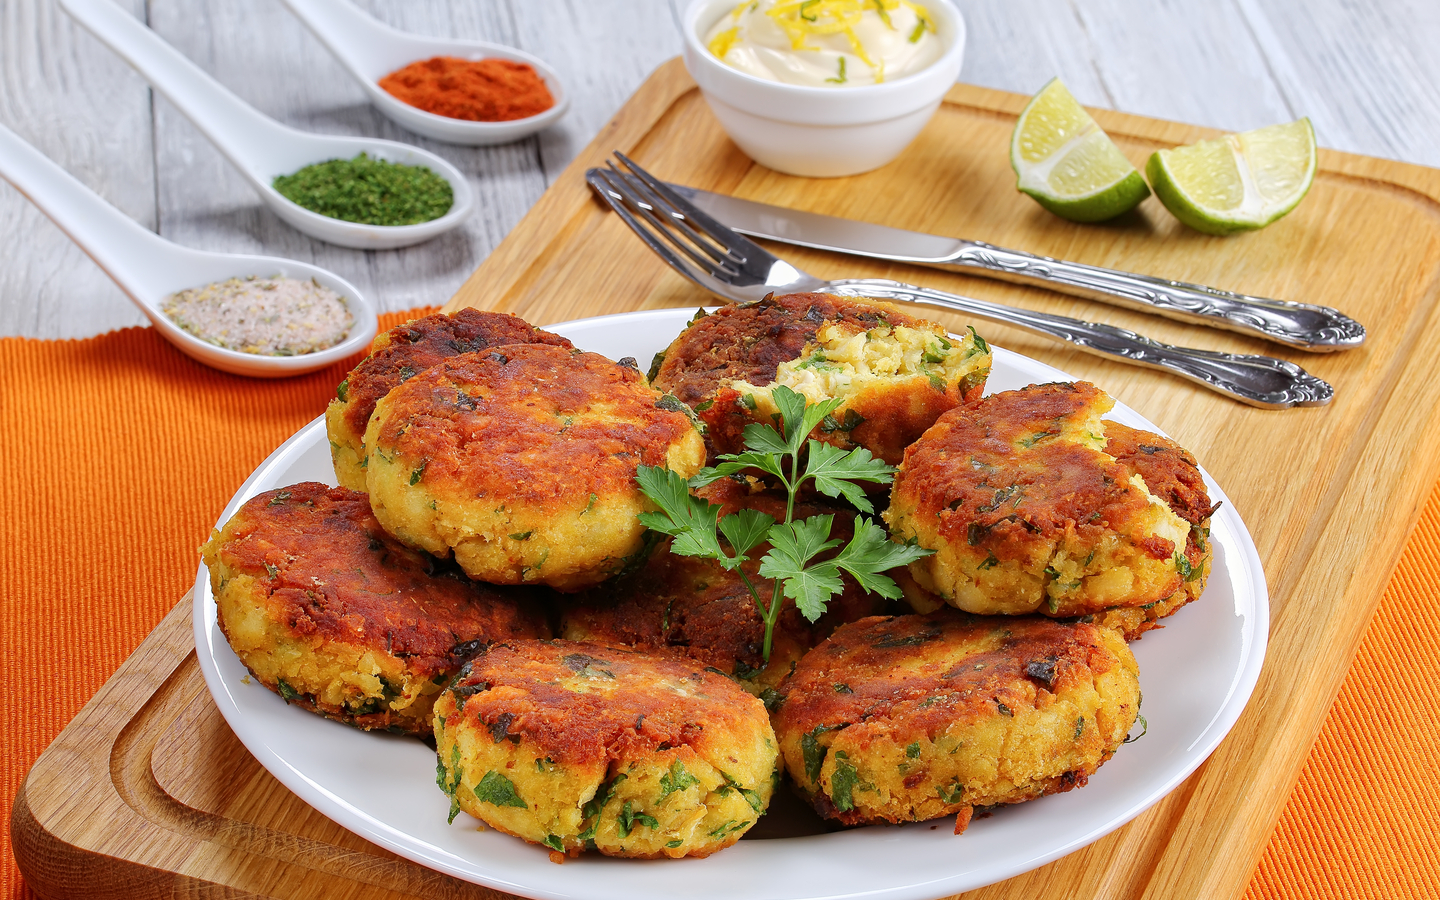 Potato cutlets paired with sauces and spices